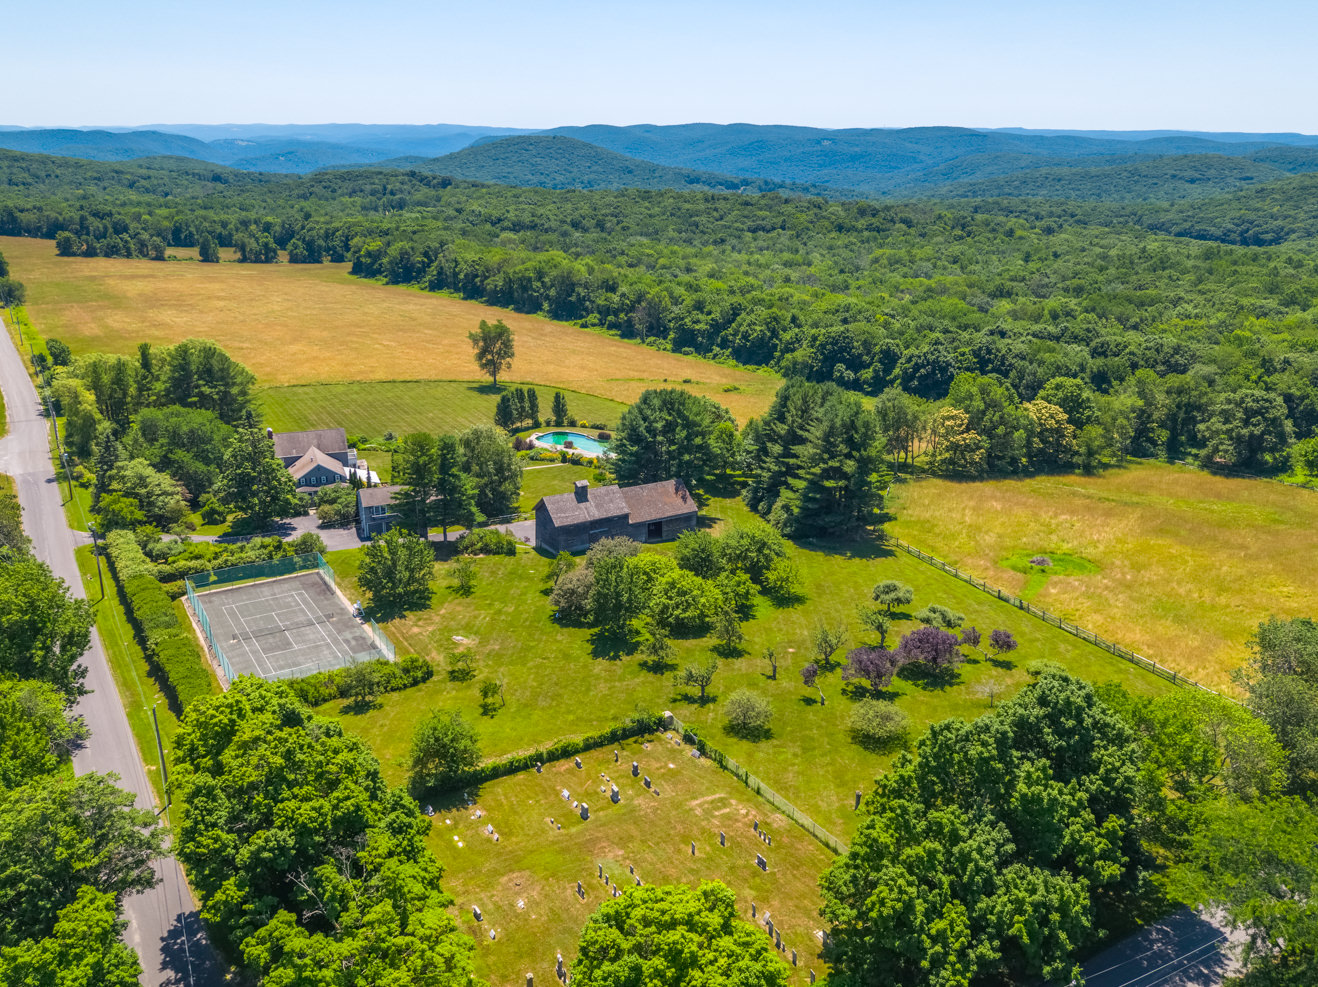 Real Estate drone video production in Connecticut, Massachusetts, New York. Photoflight Aerial Media